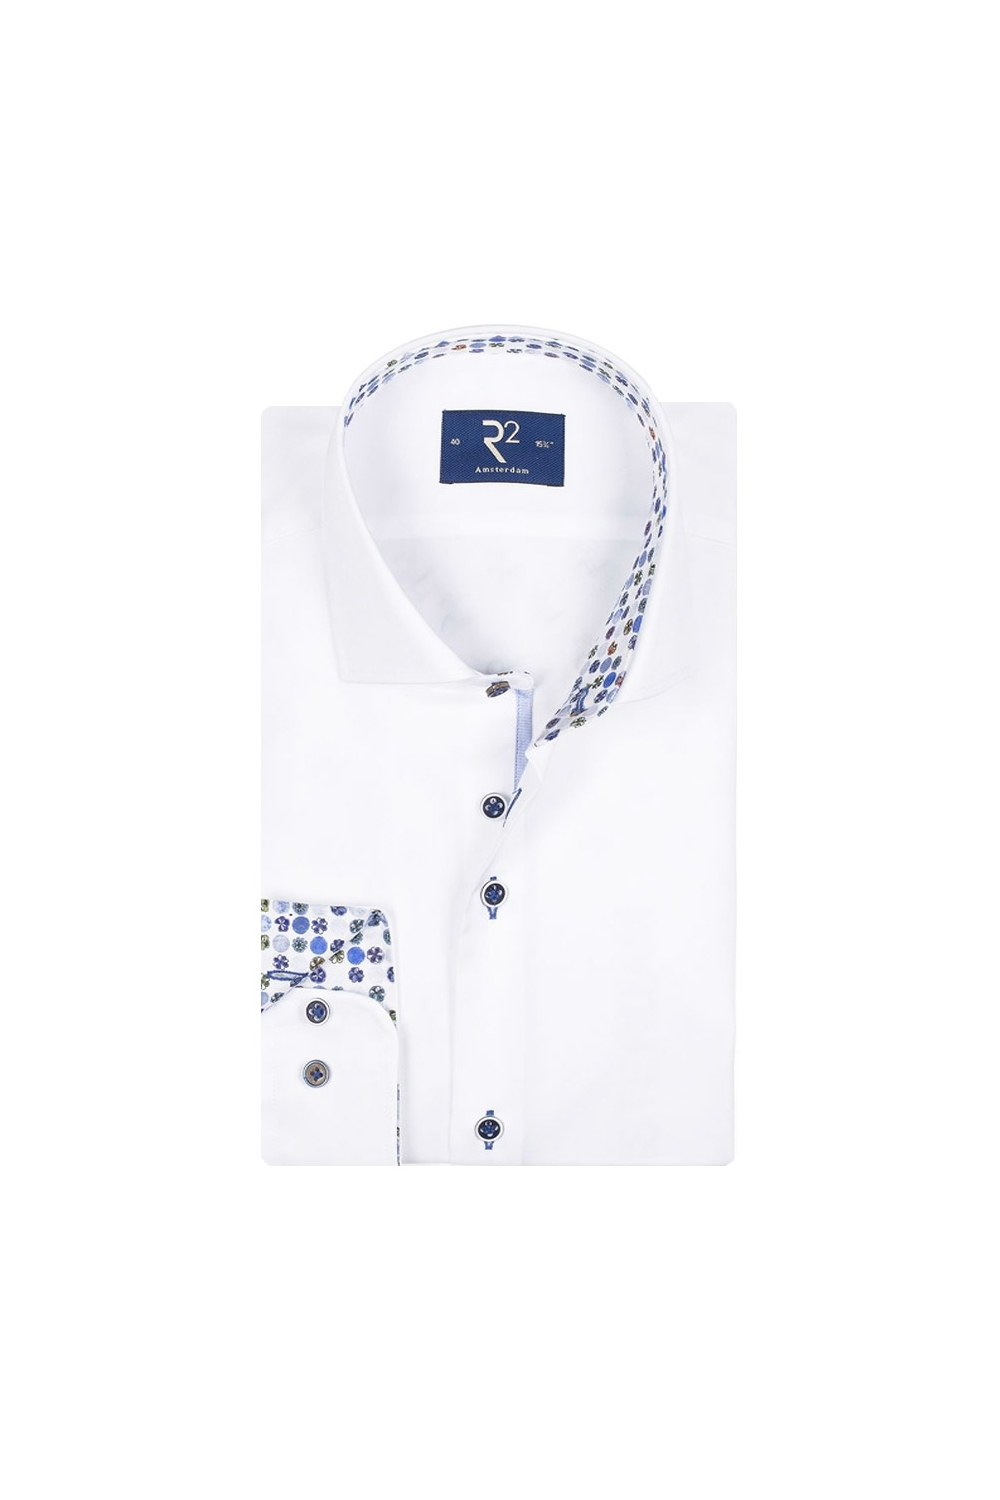 30bfc066ade3e2 R2 Long Sleeve Shirt White/Floral Trim - Clothing from Michael ...